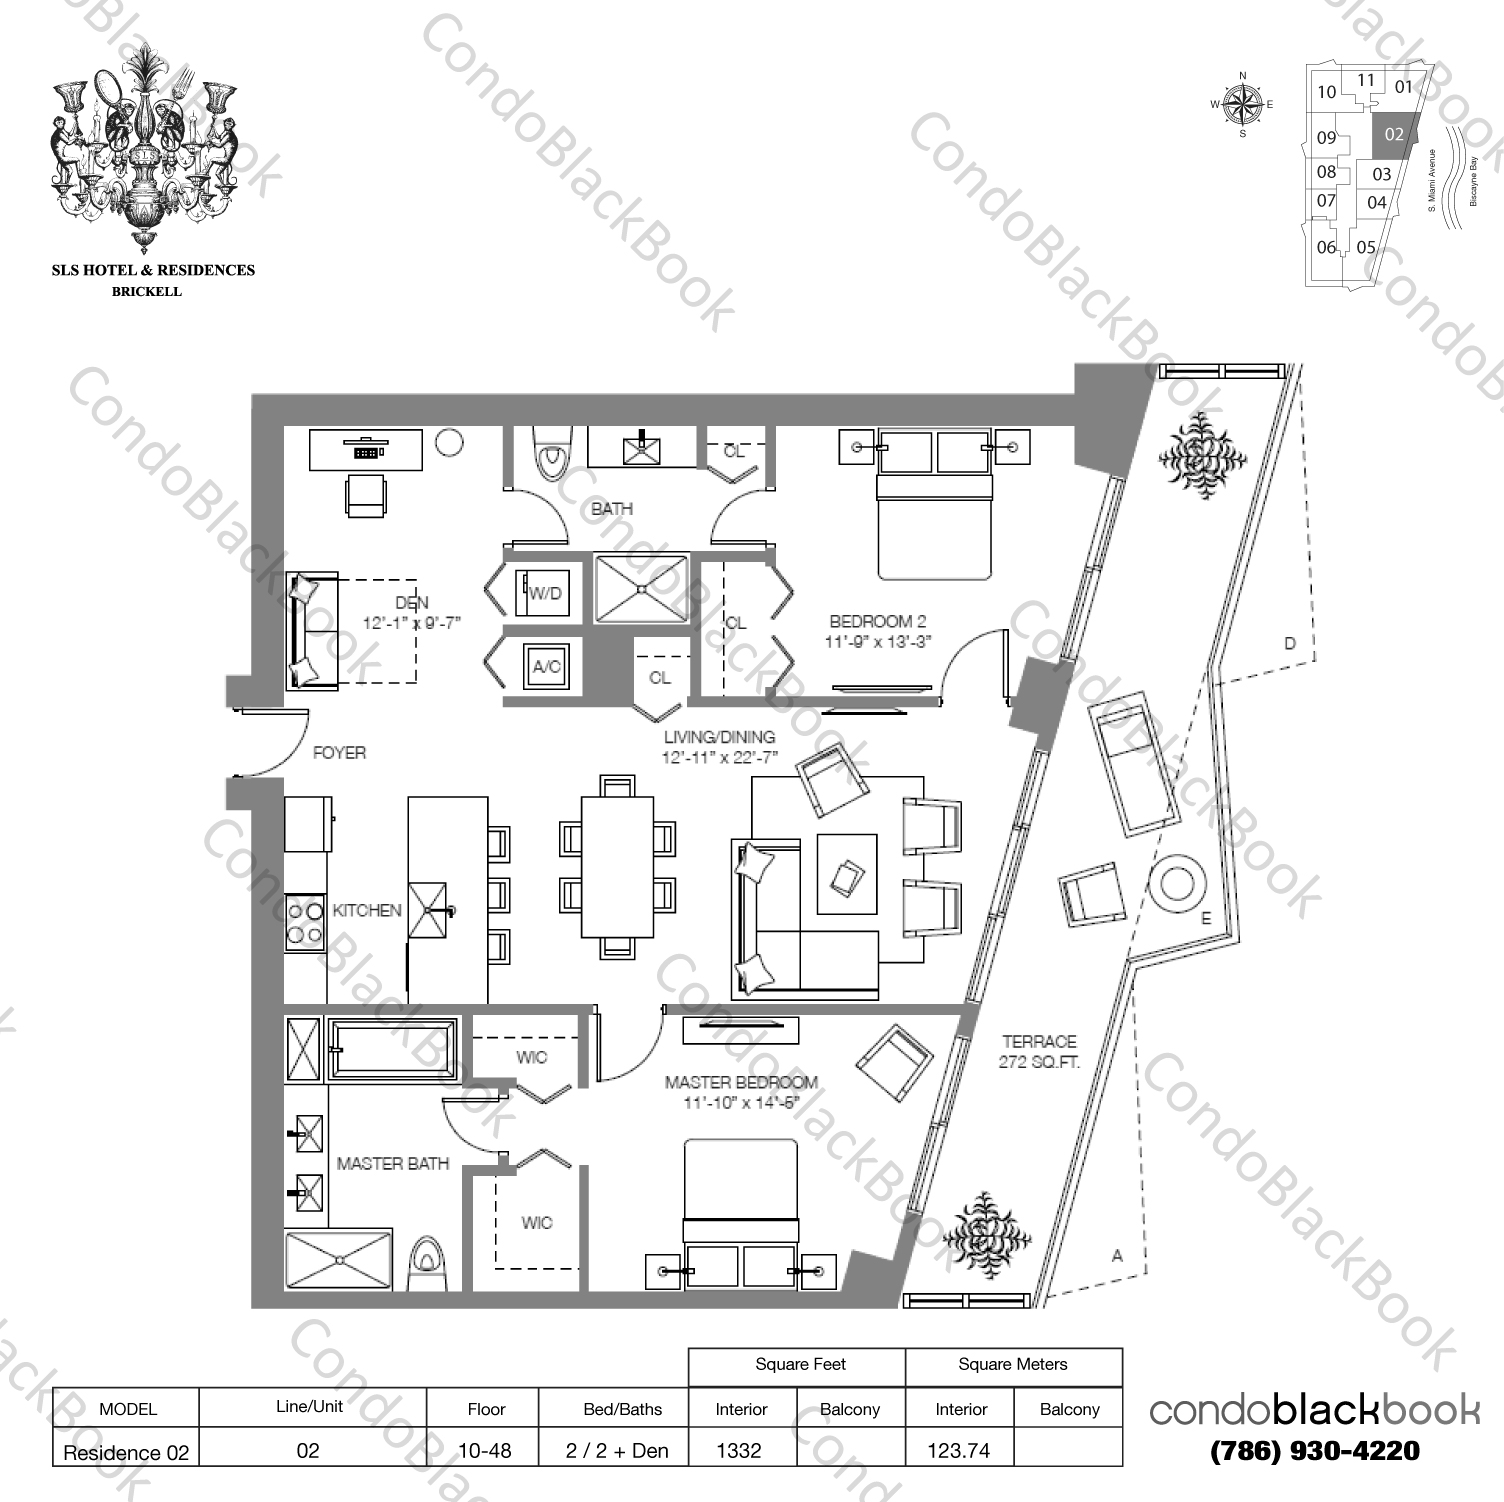 Floor plan for SLS Hotel & Residences Brickell Miami, model RESIDENCE 02, line 02, 2/2+Den bedrooms, 1,604 sq ft